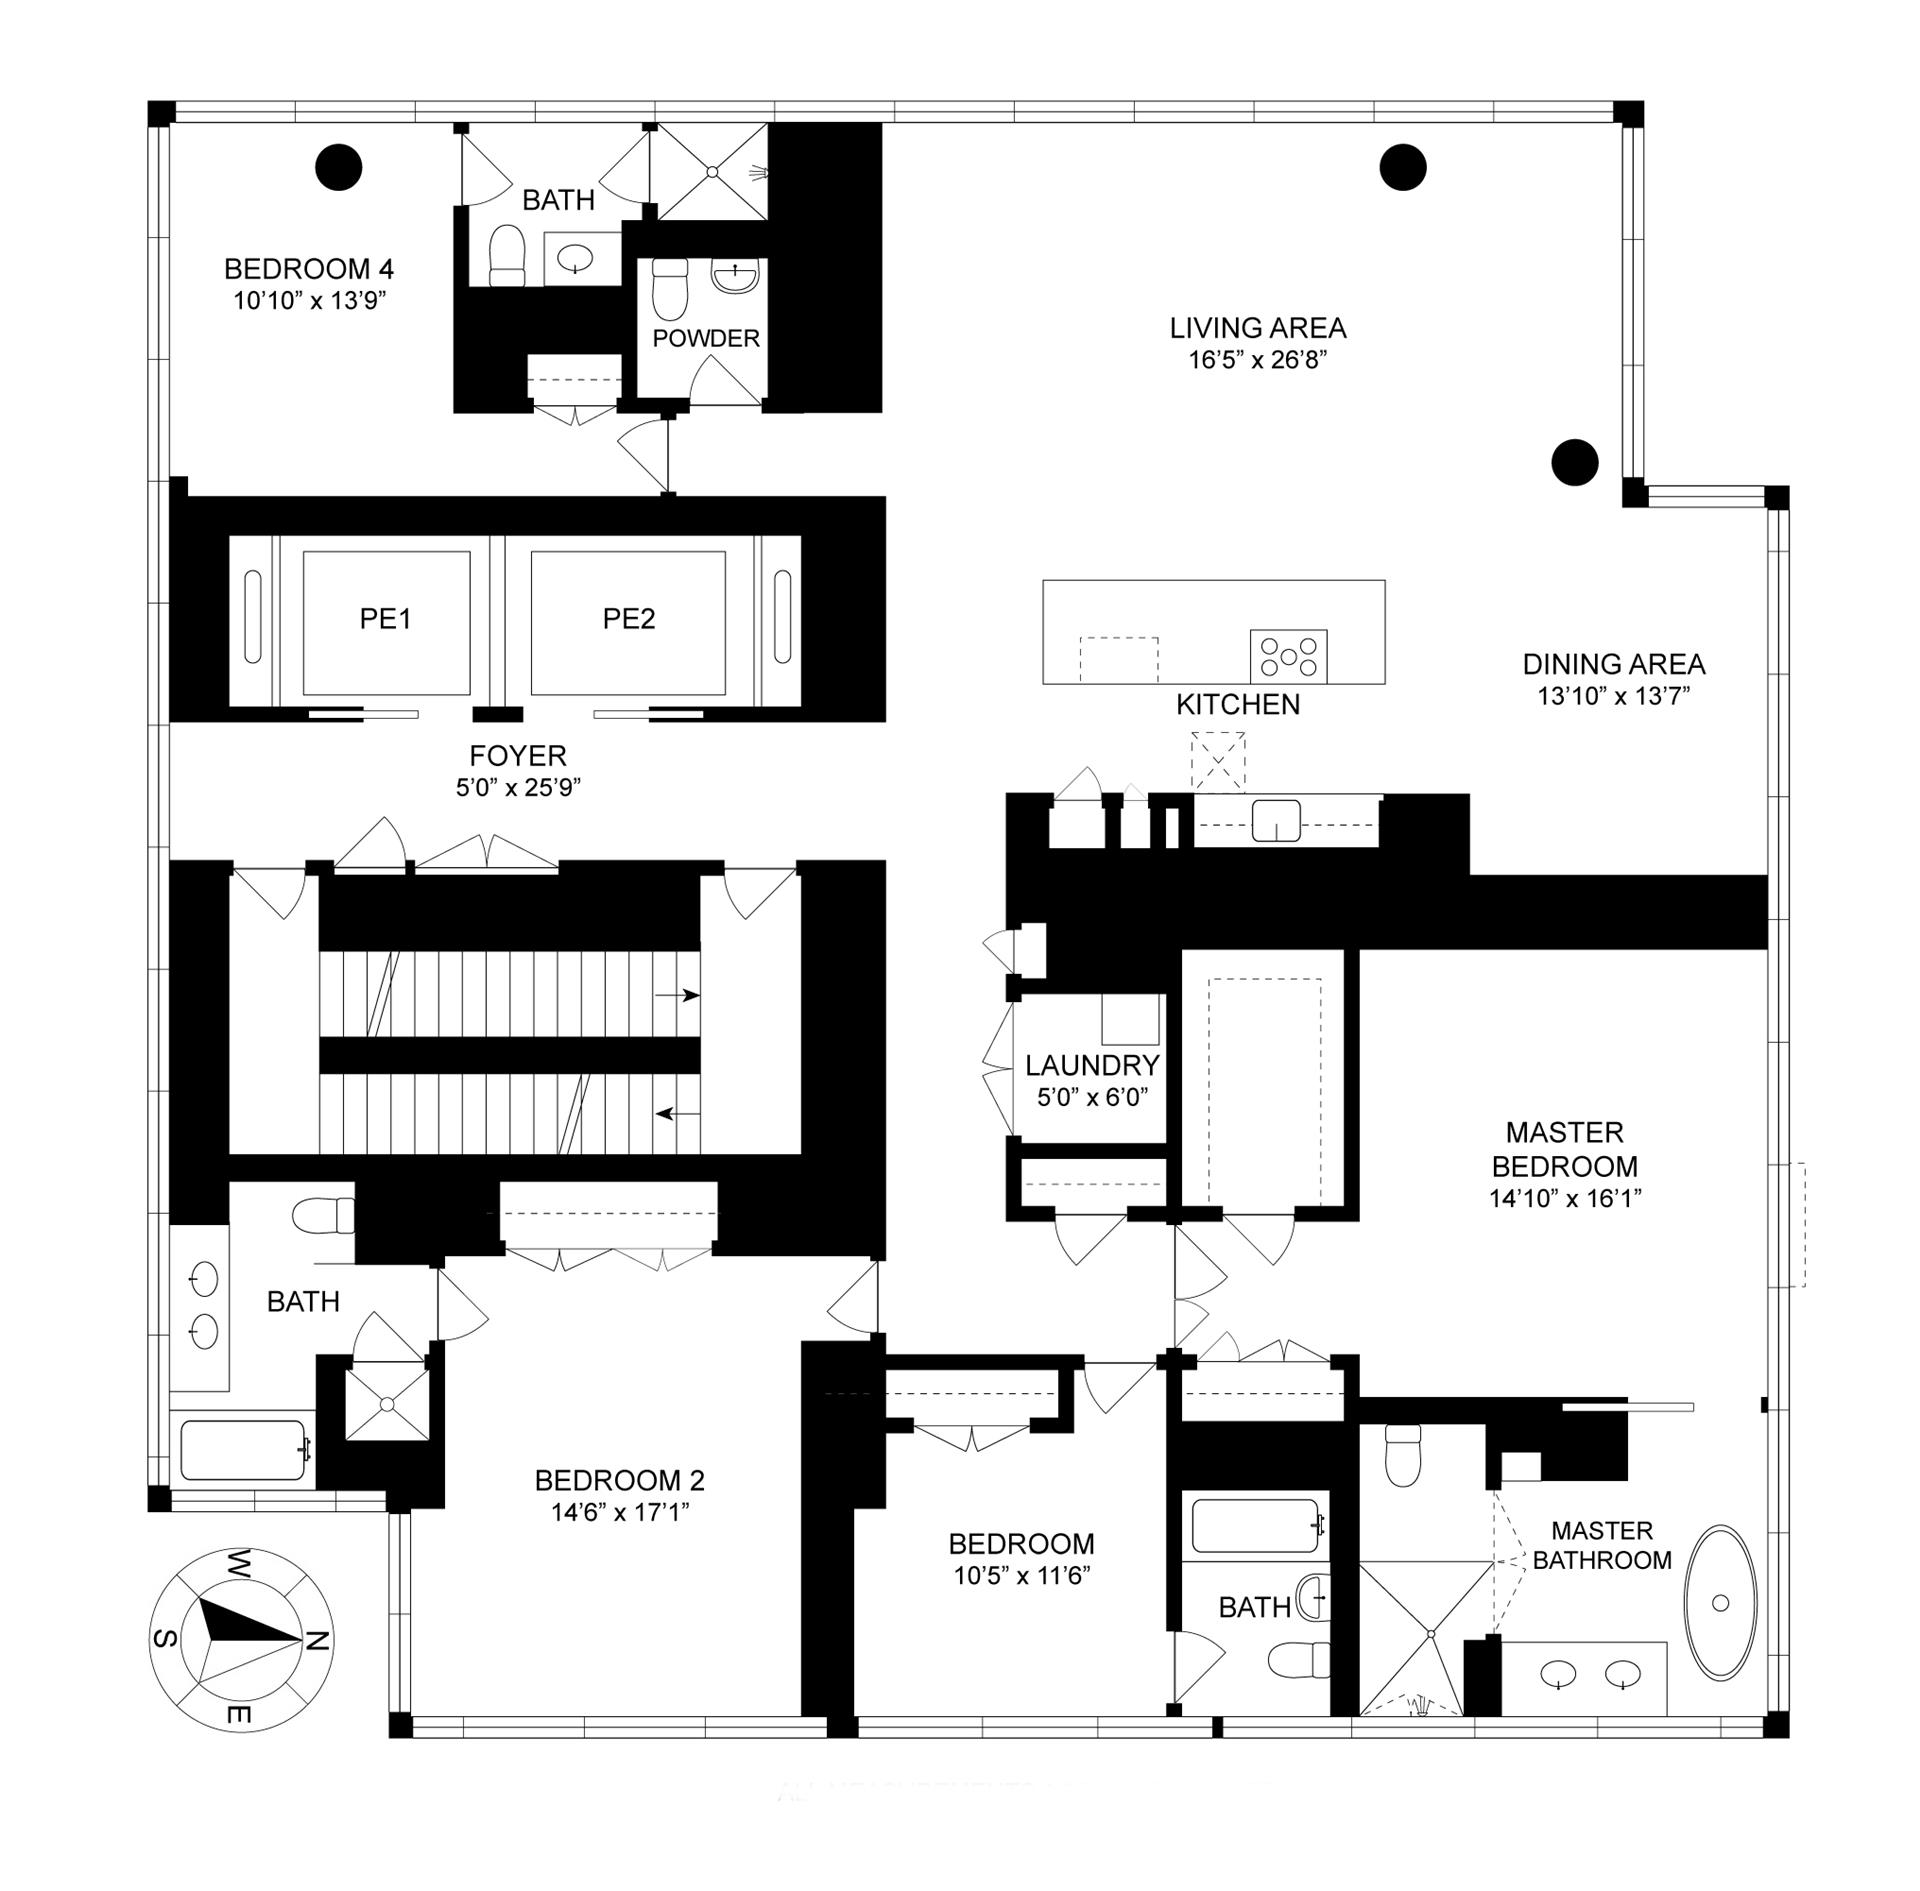 Floor plan of One Madison, 23 East 22nd Street, 40A - Flatiron District, New York